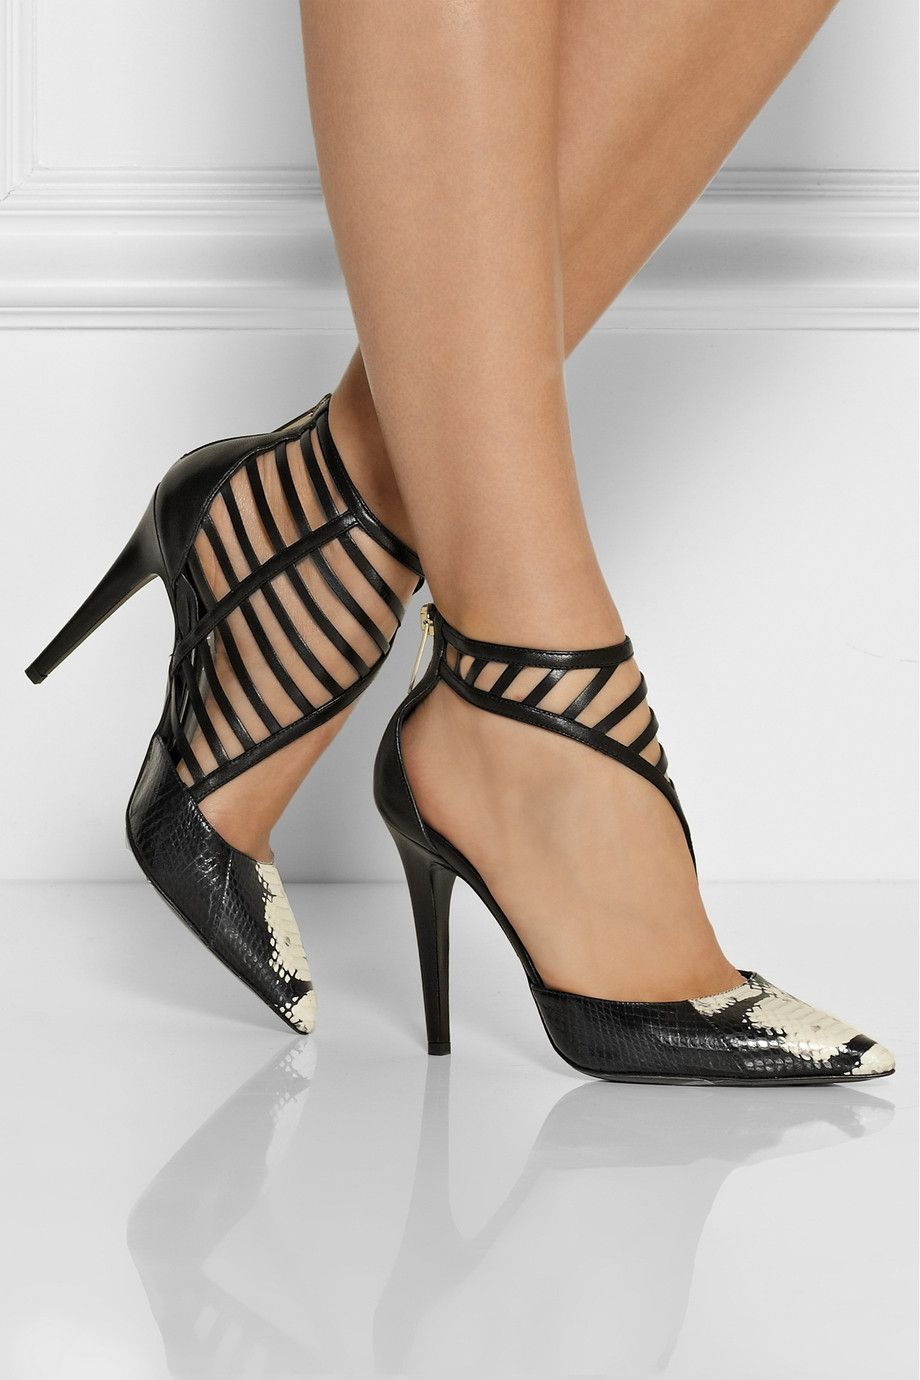 cheap sale sale Tamara Mellon Leather Caged Pumps cheap enjoy best store to get cheap price free shipping iOSAxz